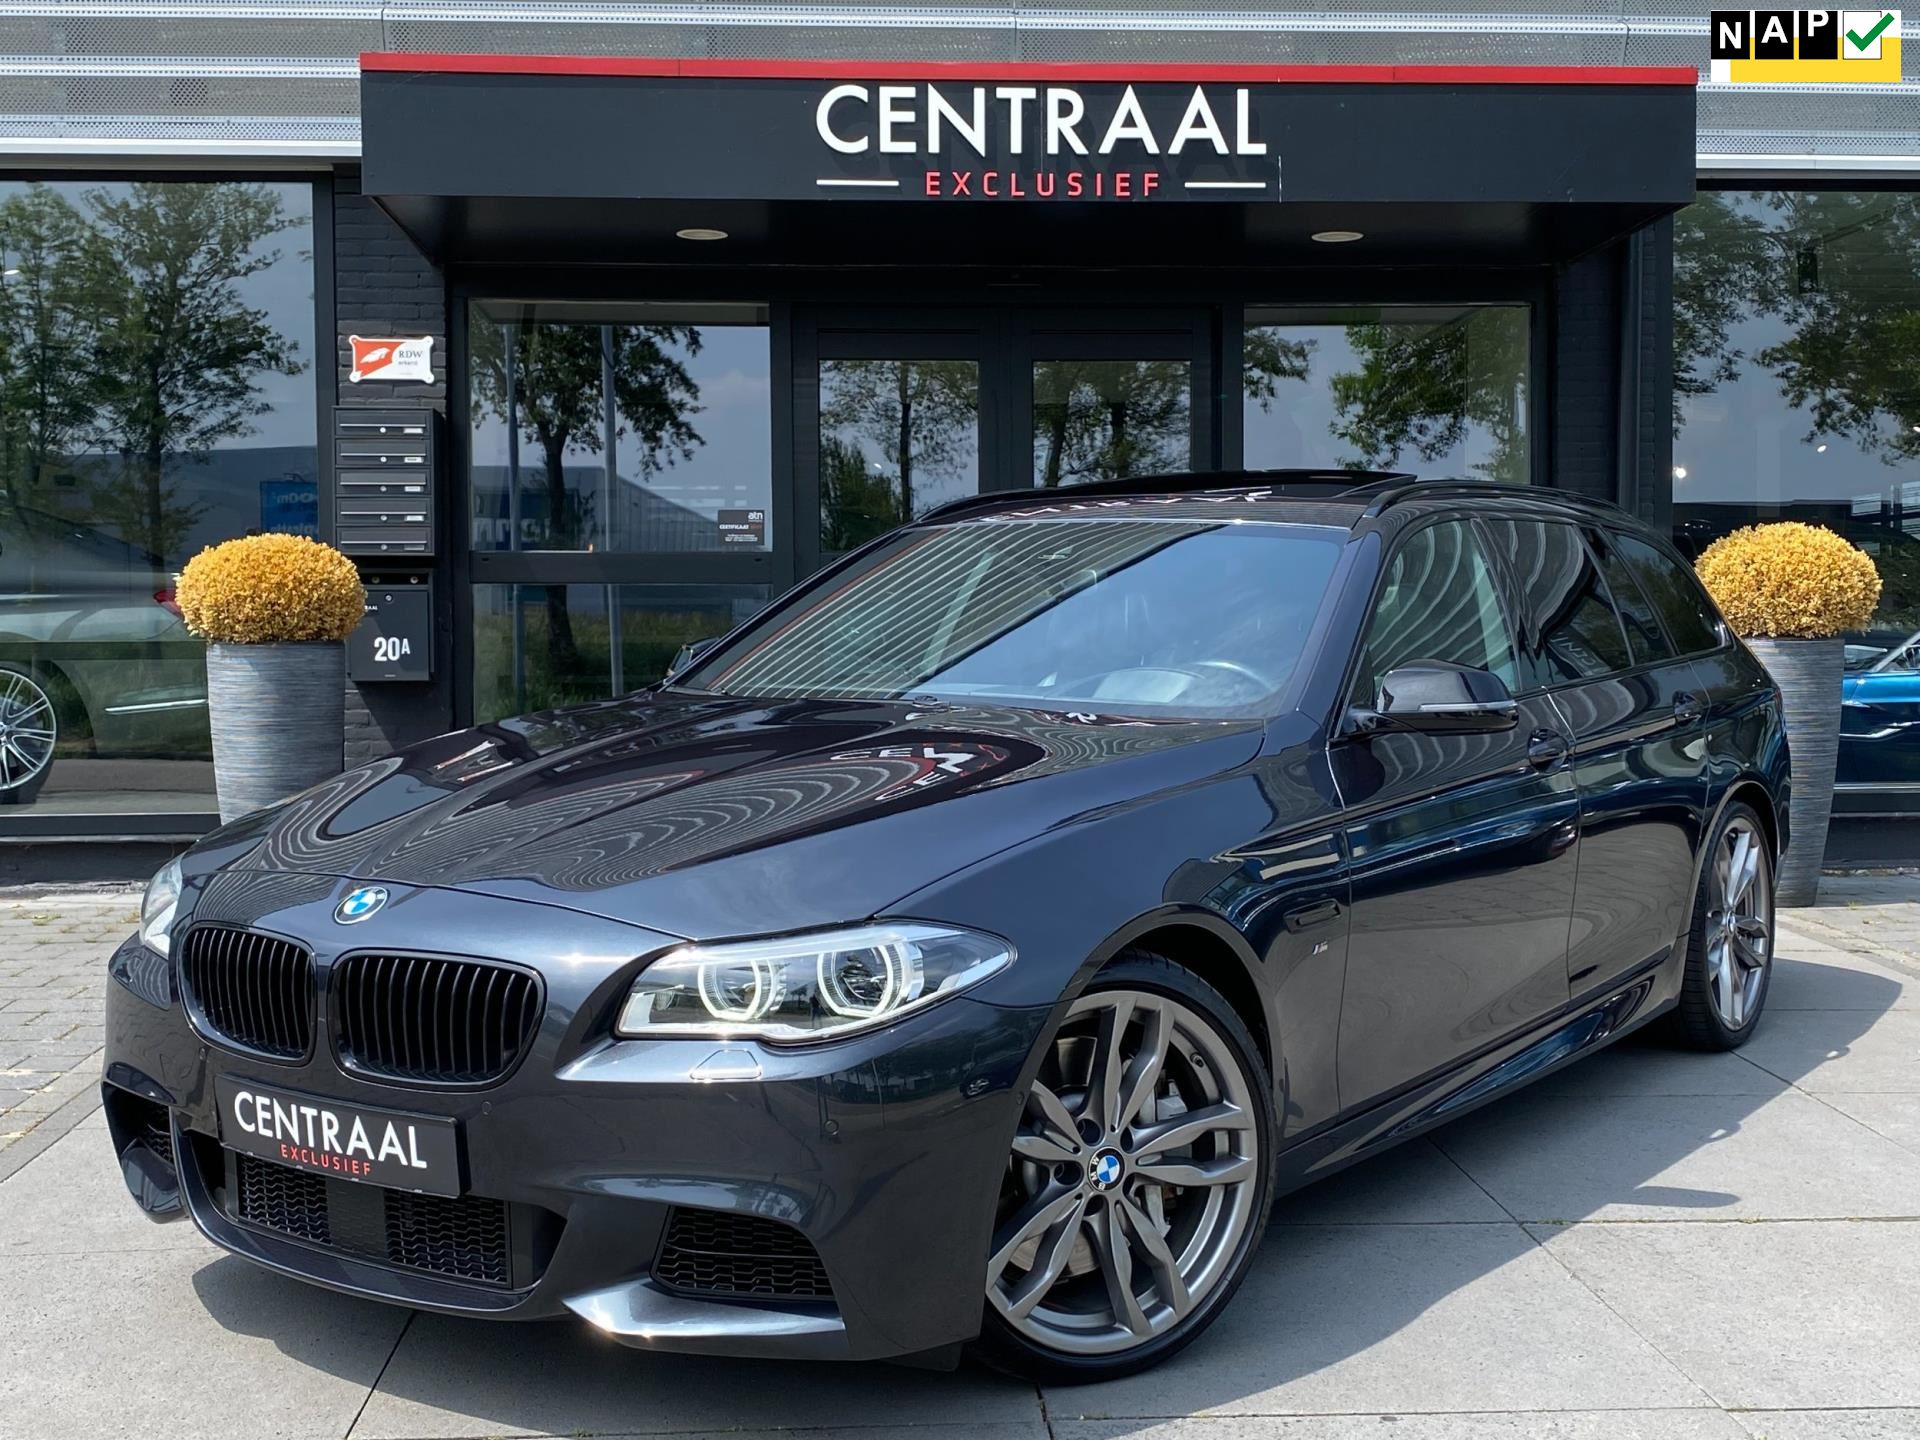 BMW 5-serie Touring occasion - Centraal Exclusief B.V.